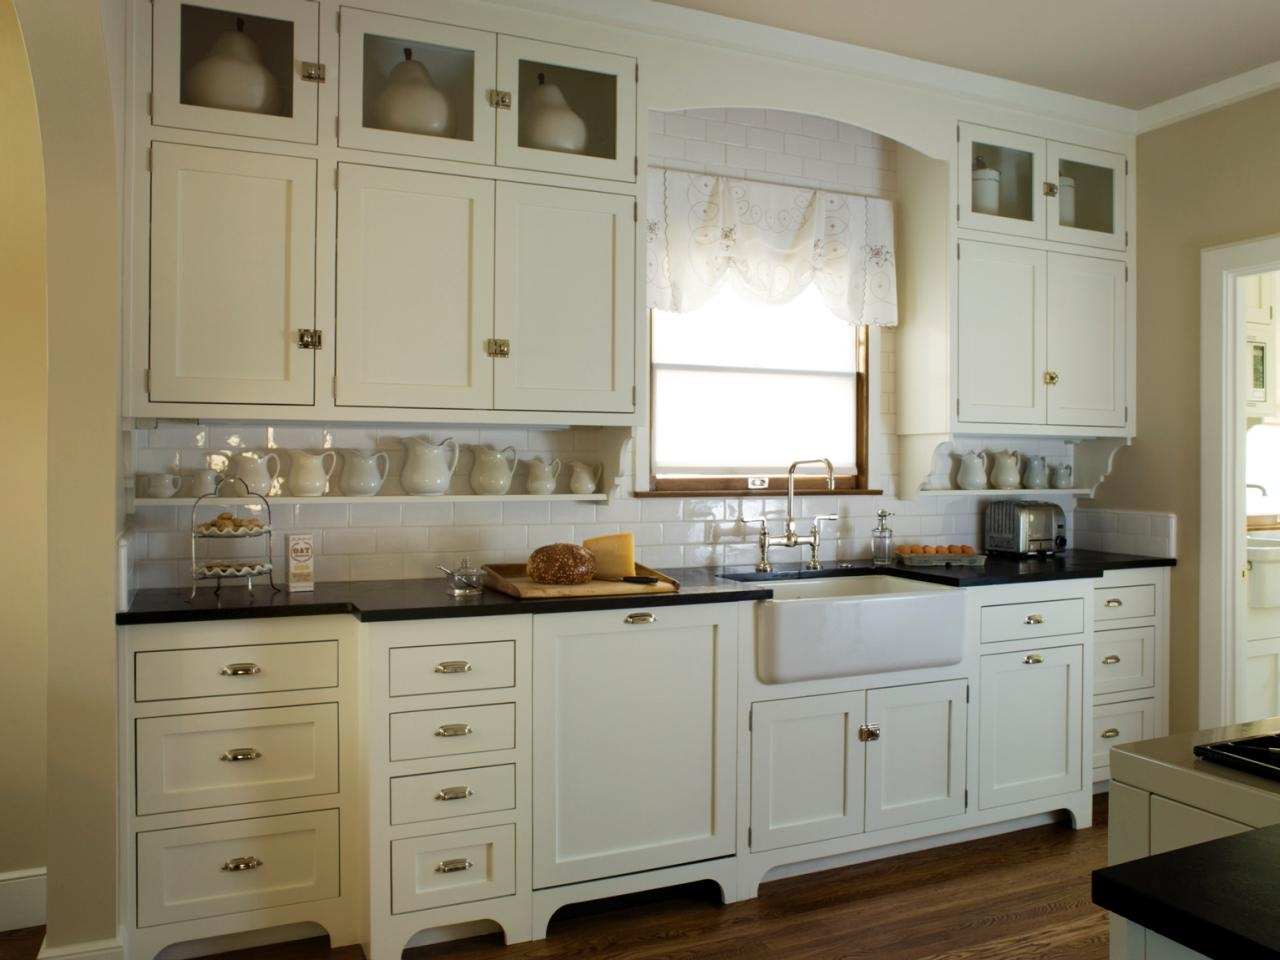 Kitchen Sinks With White Cabinets